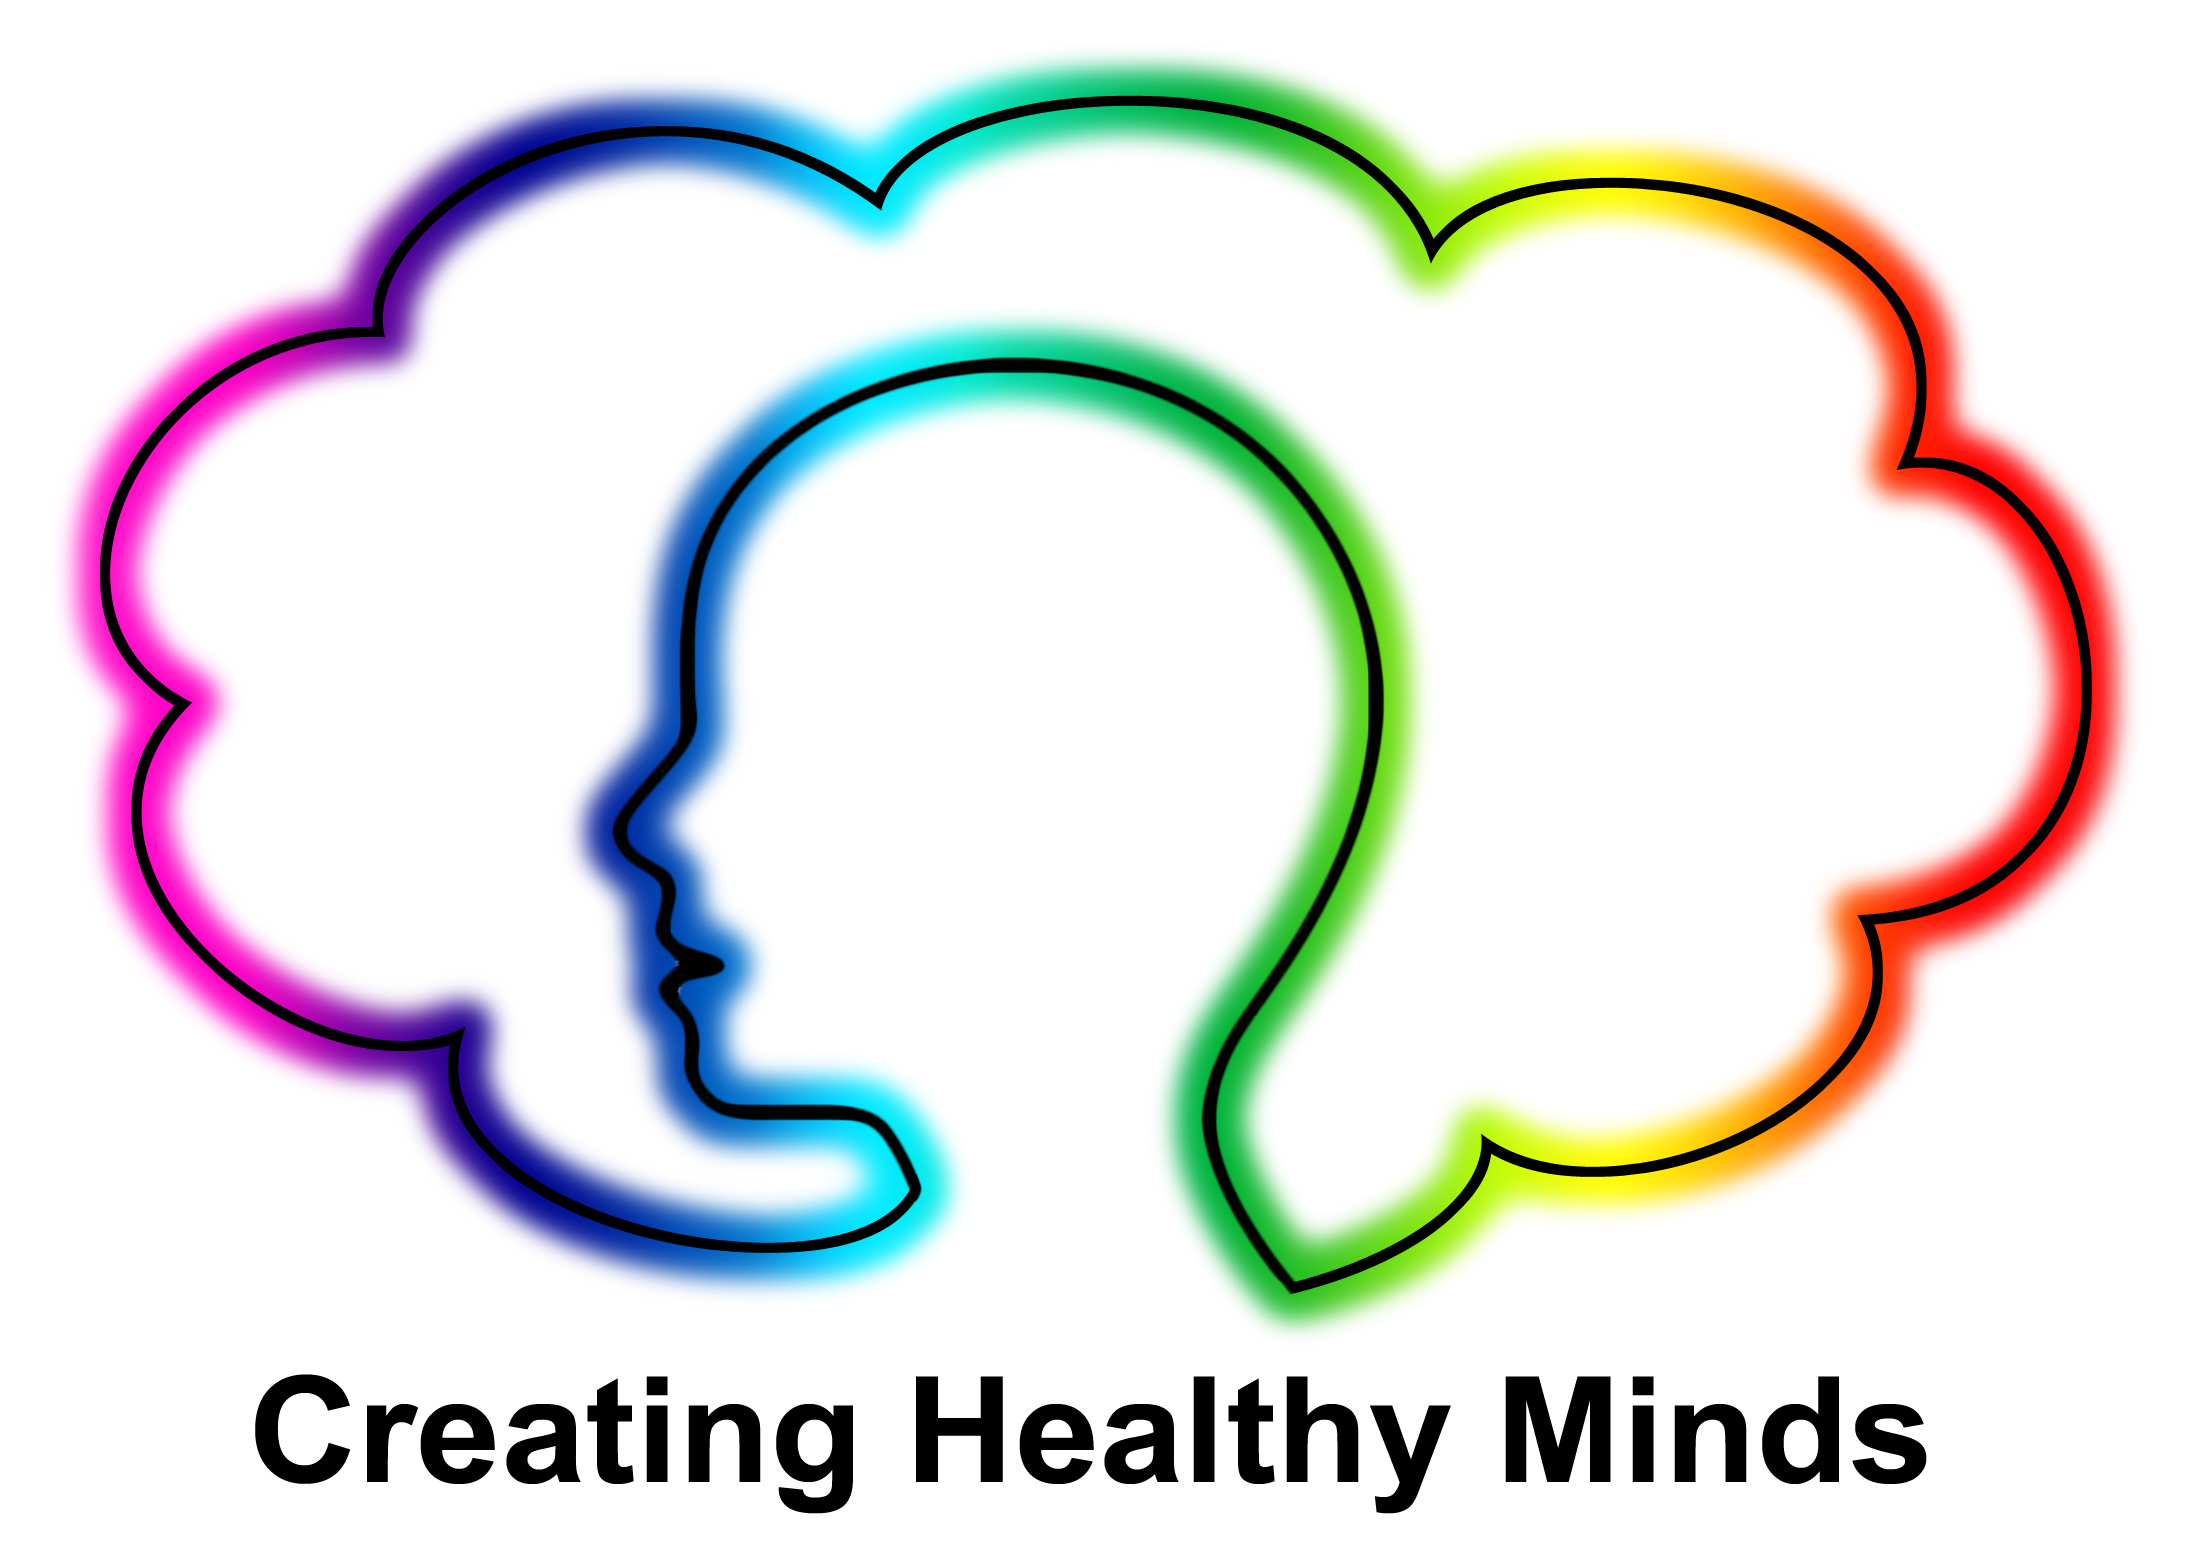 creating healthy minds logo png